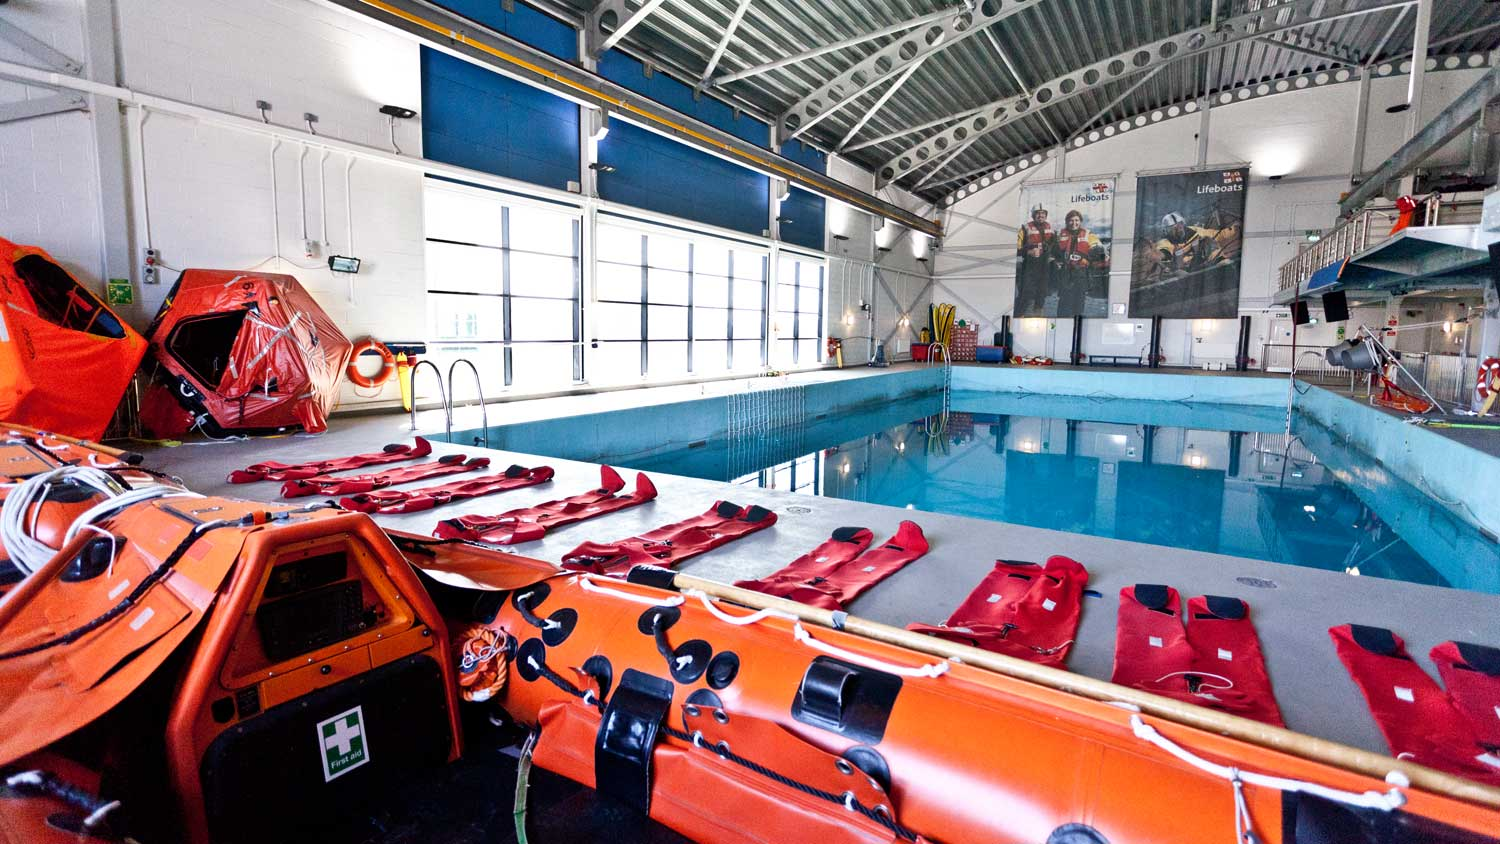 Sea survival pool at RNLI College, Poole.